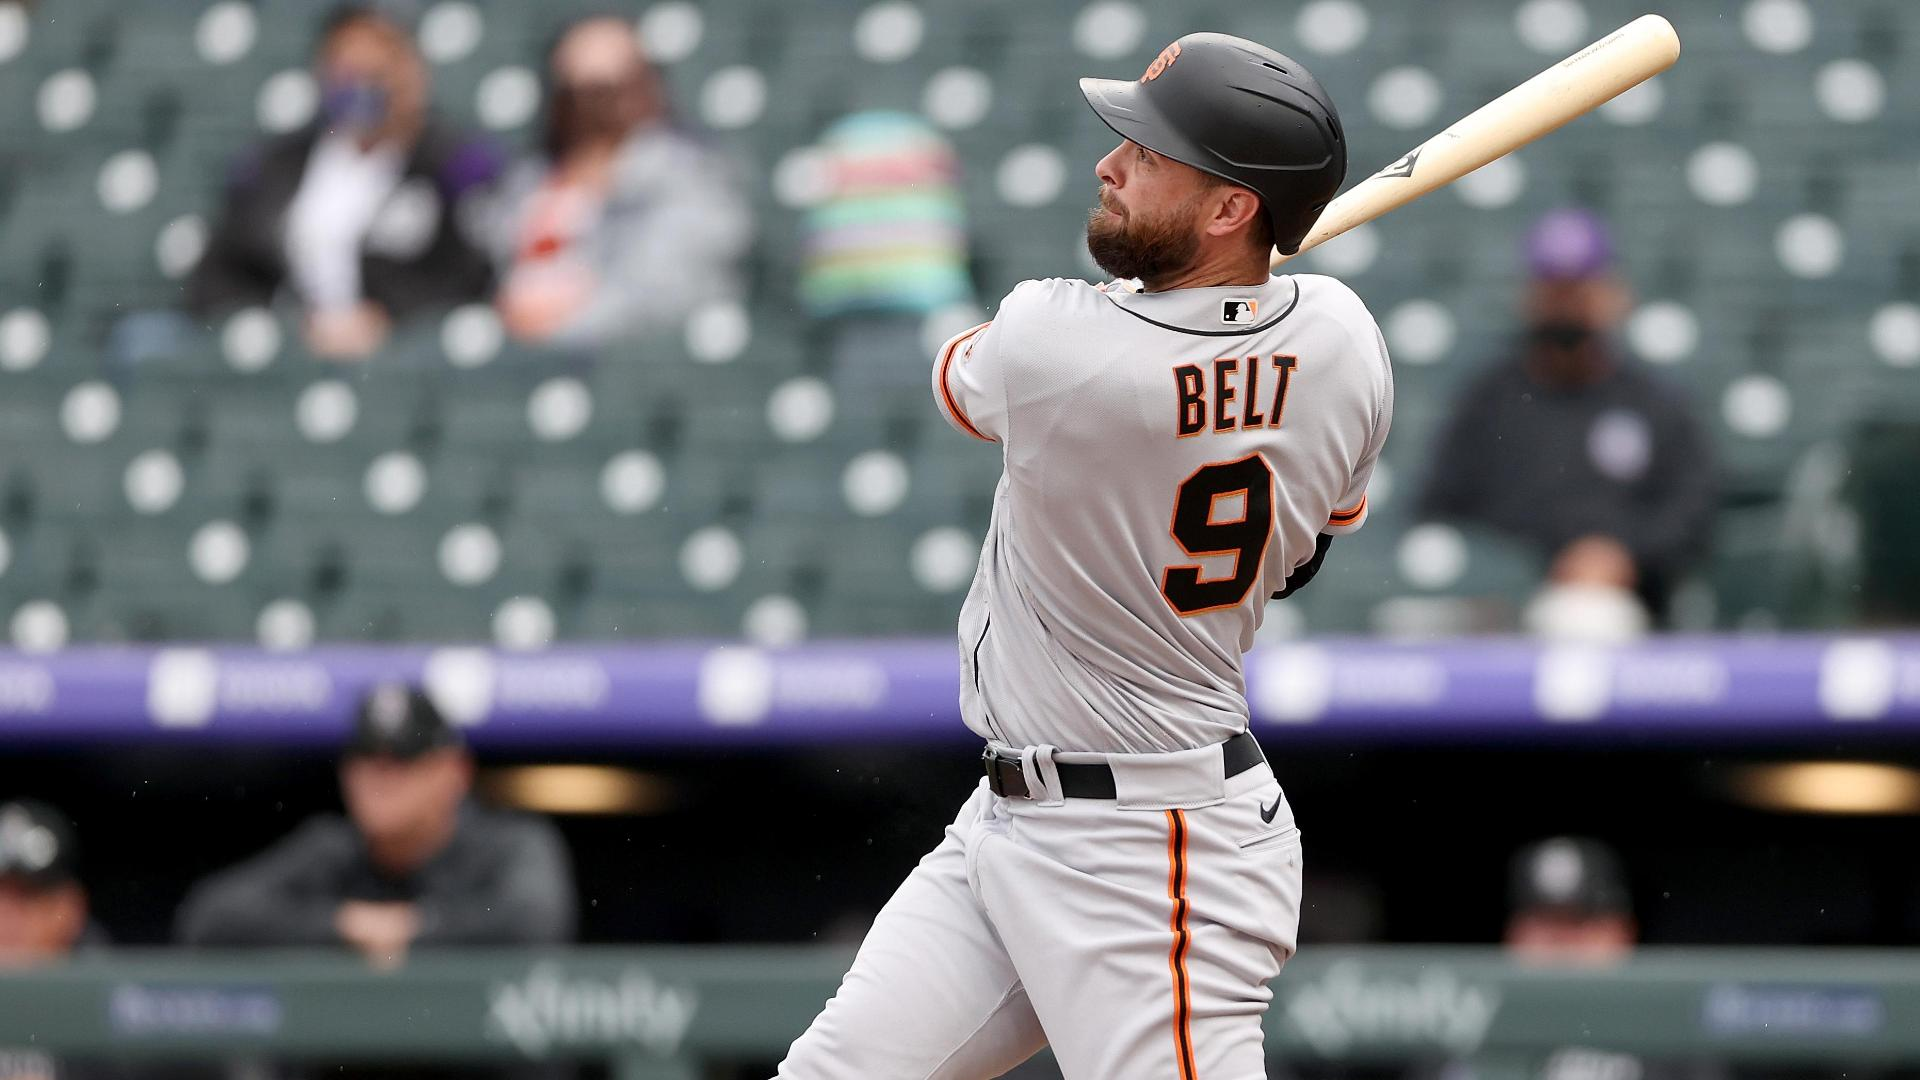 Belt busts game open with grand slam in 10-run first inning